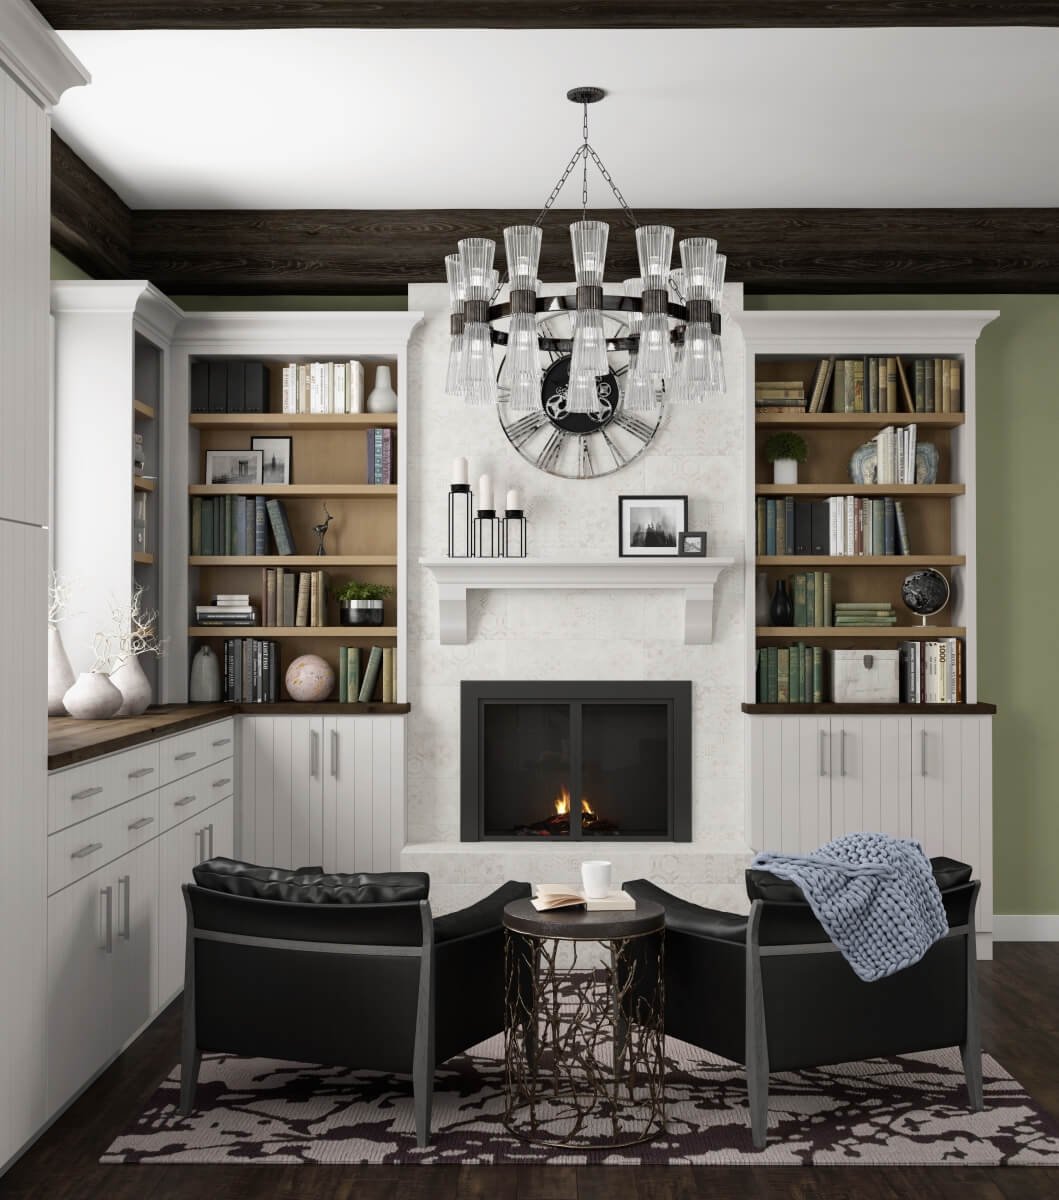 A reading nook and in the kitchen fireplace with living room seating area in an open concept home.